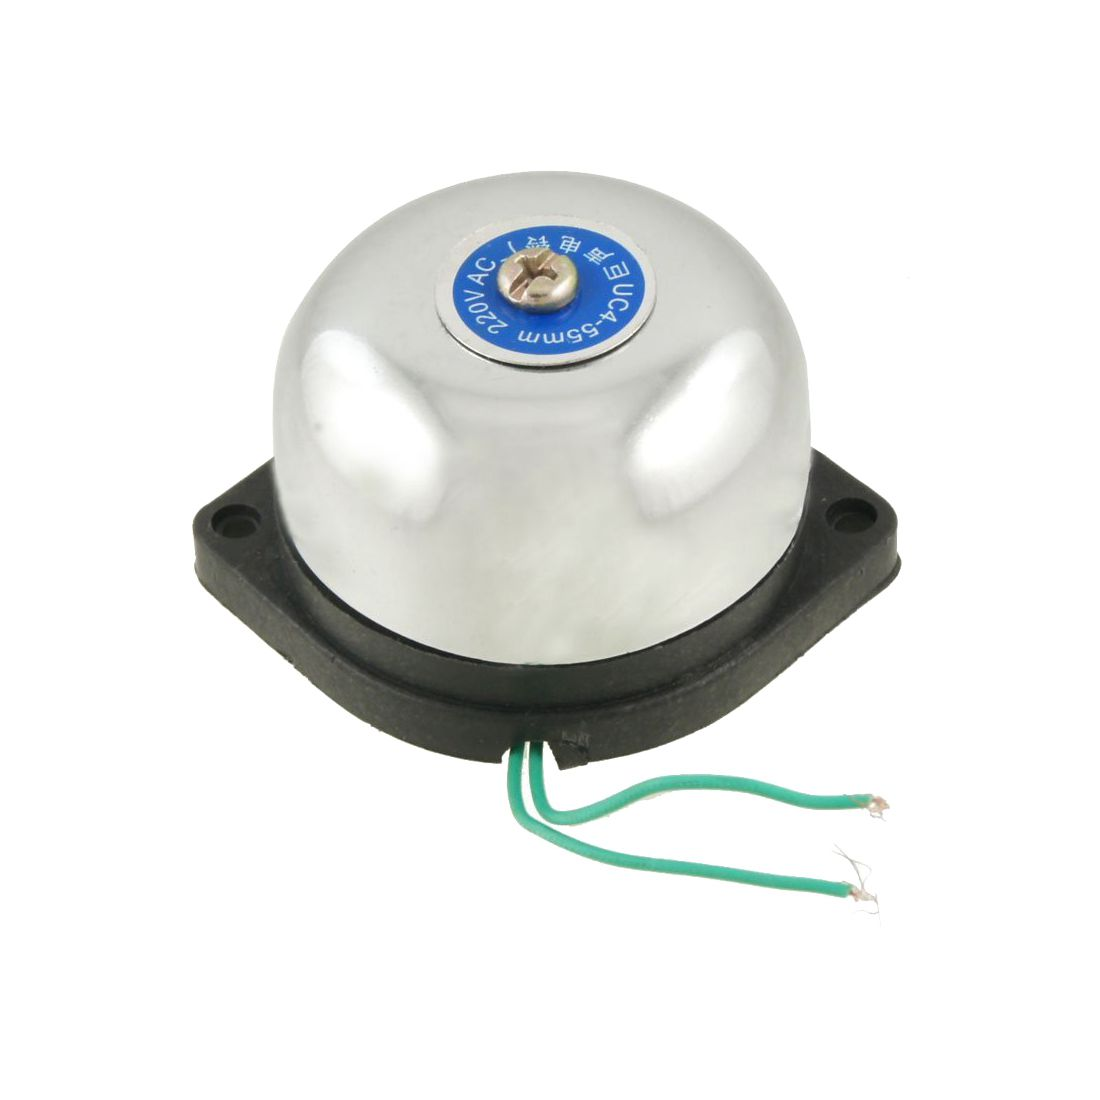 2 Pcs Of MOOL 55mm Diameter Fire Alarm Electric Gong Bell AC 220V